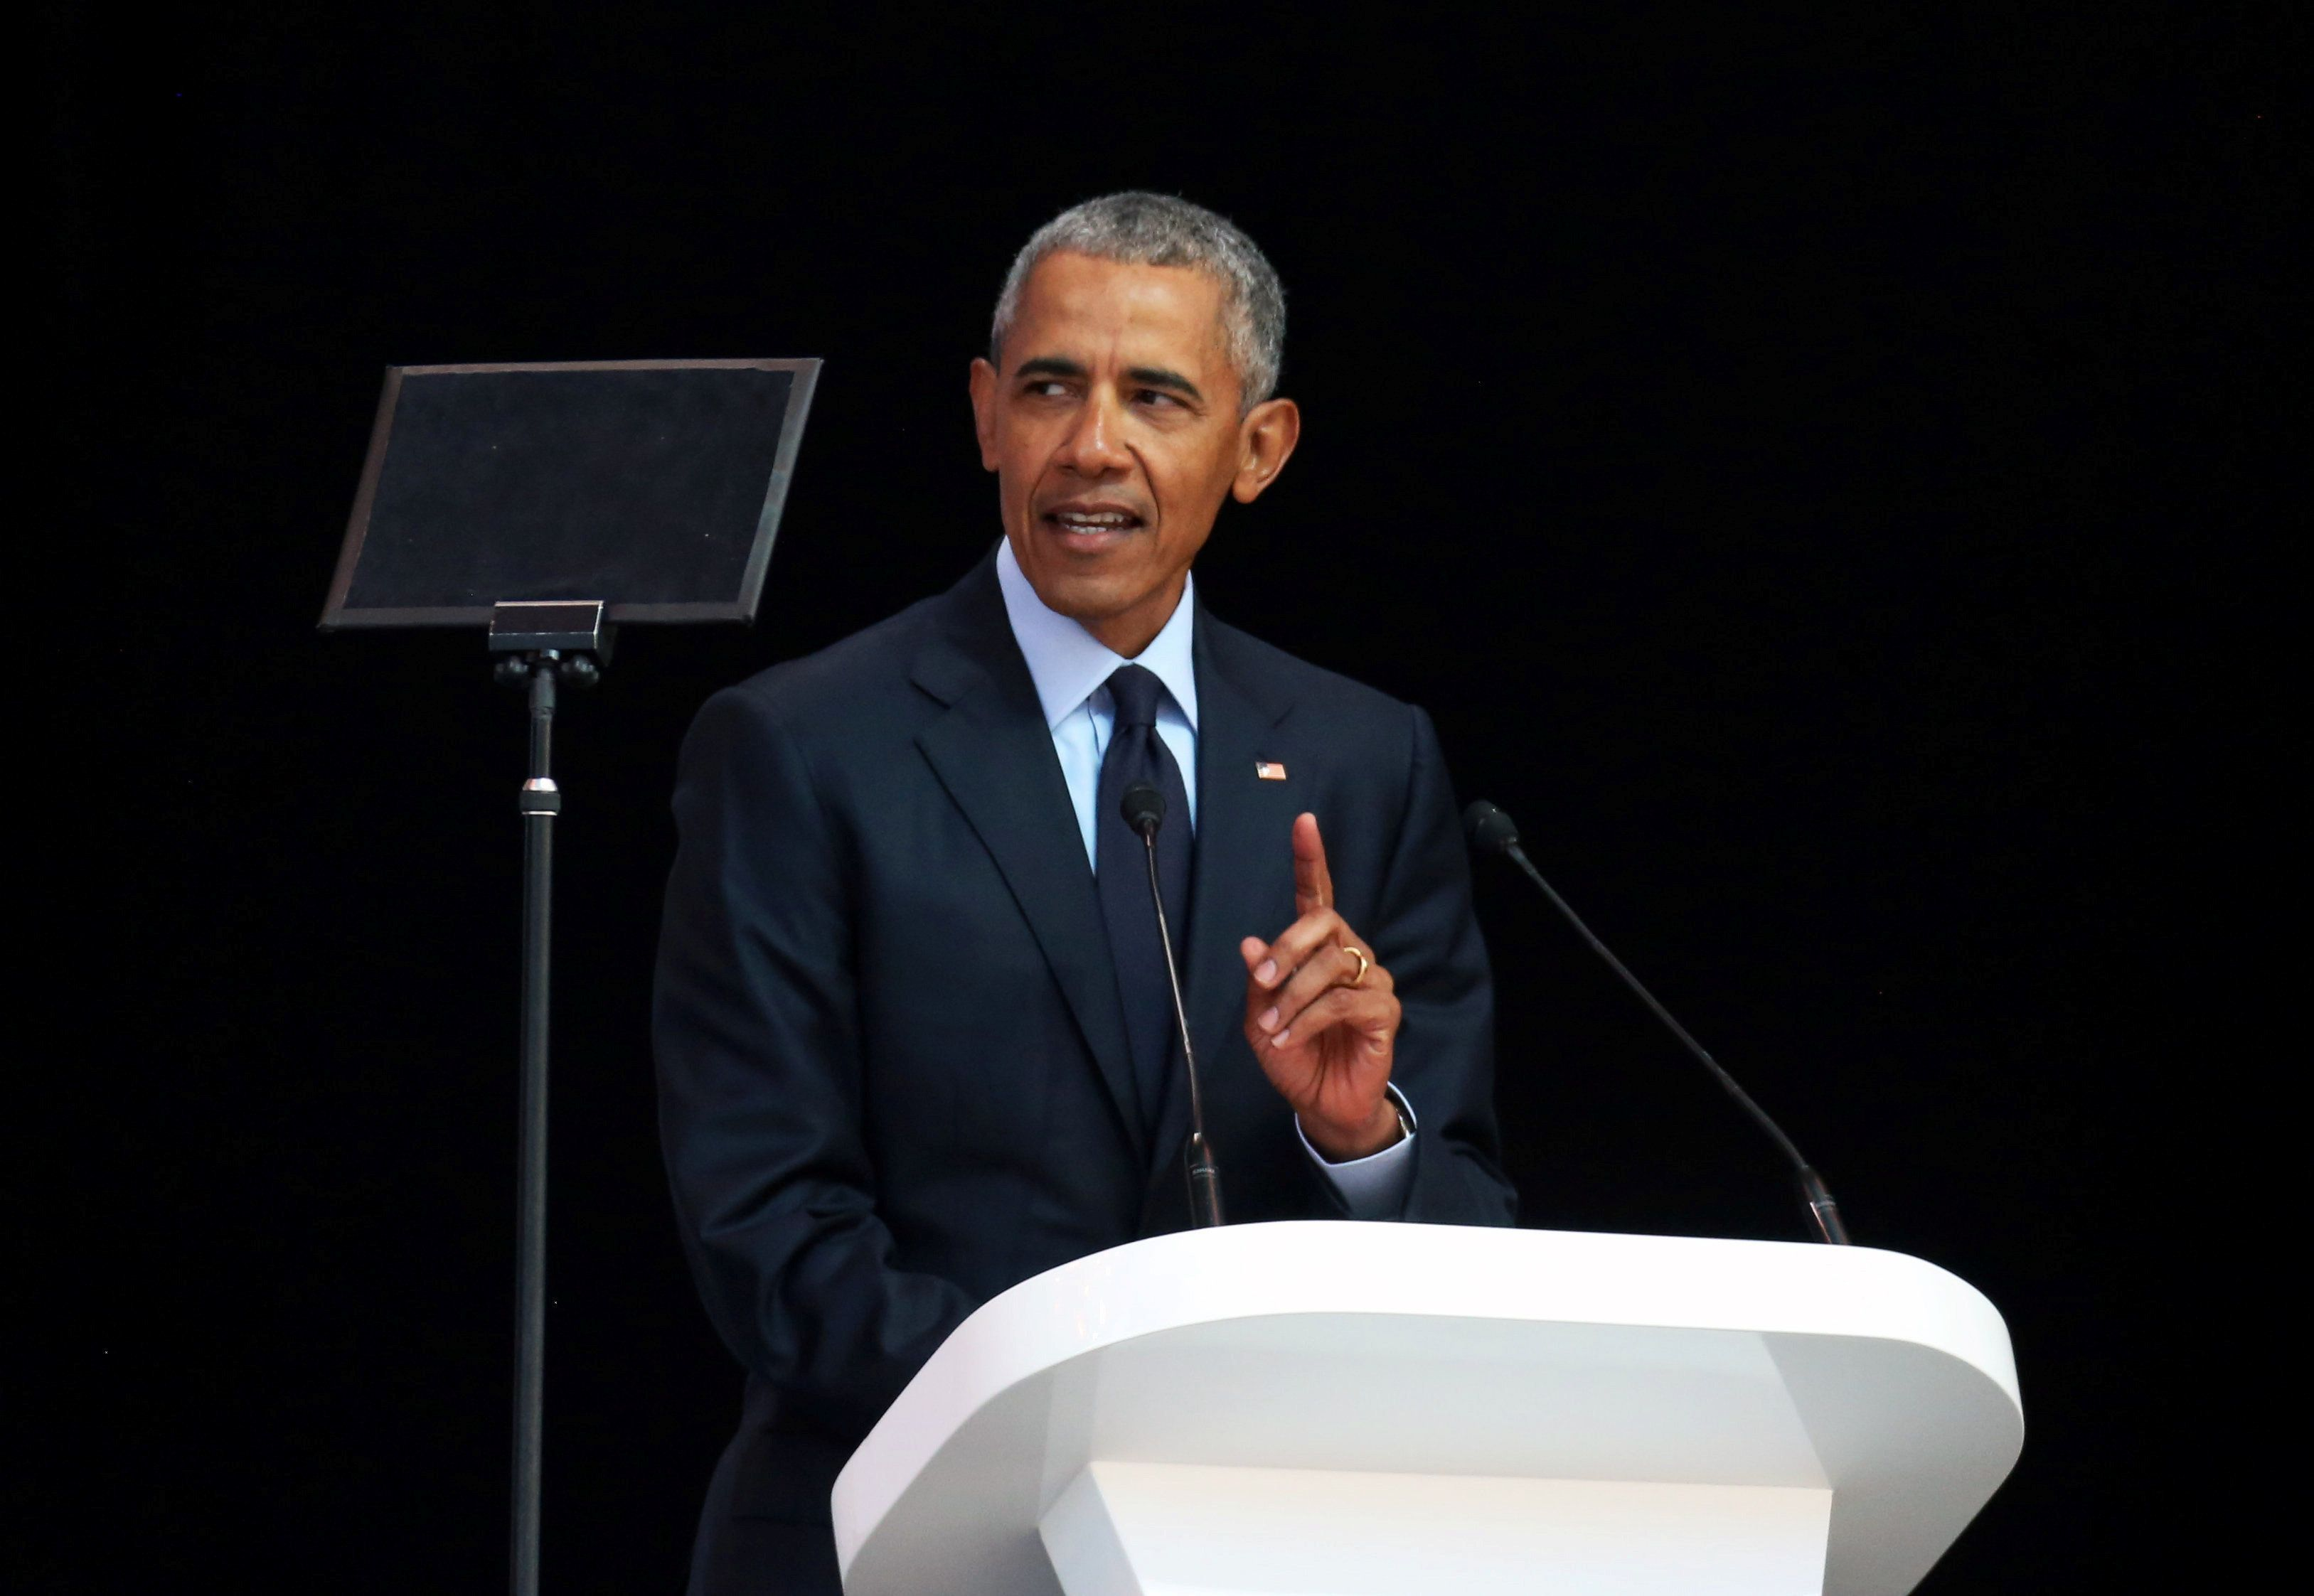 Former U.S. President Barack Obama delivers the 16th Nelson Mandela annual lecture, marking the centenary of the anti-apartheid leaderÕs birth, in Johannesburg, South Africa July 17, 2018. REUTERS/Siphiwe Sibeko